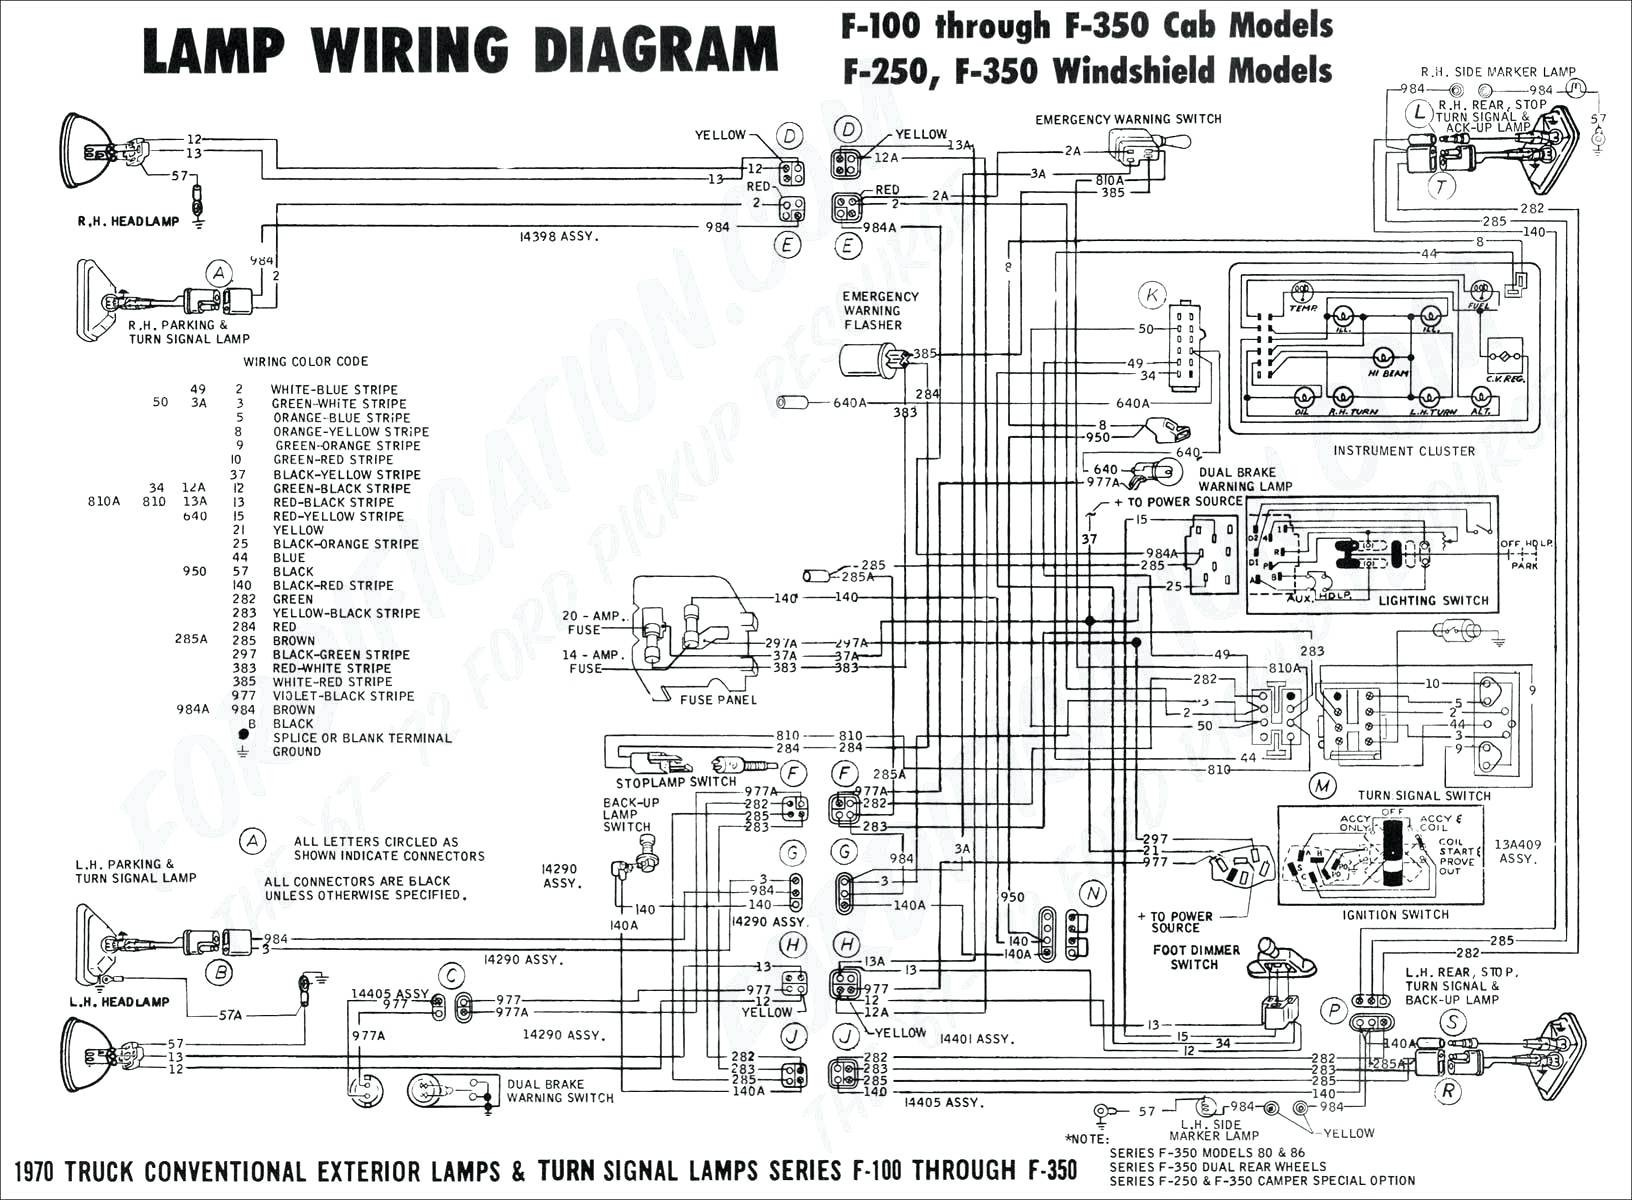 00 ford mustang fuse box diagram